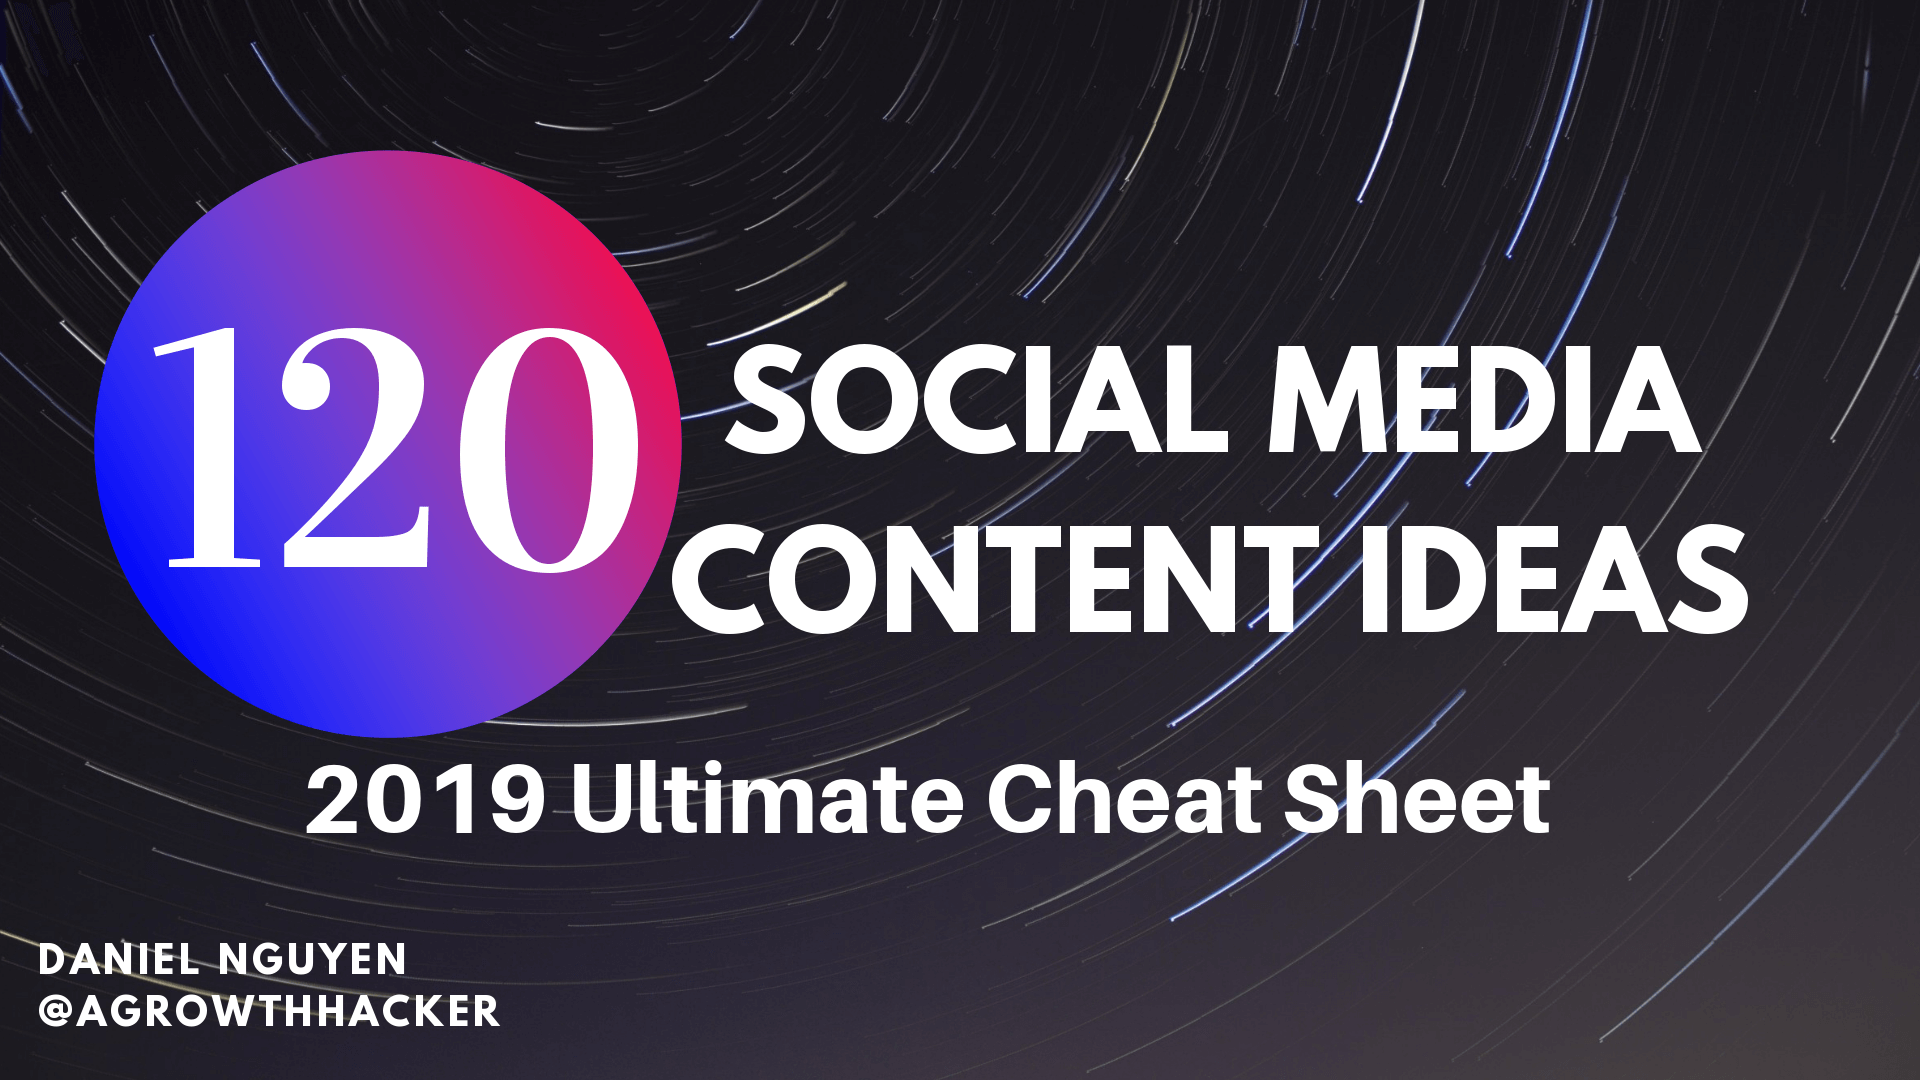 120 Social Media Content Ideas – The Ultimate Cheat Sheet for 2019